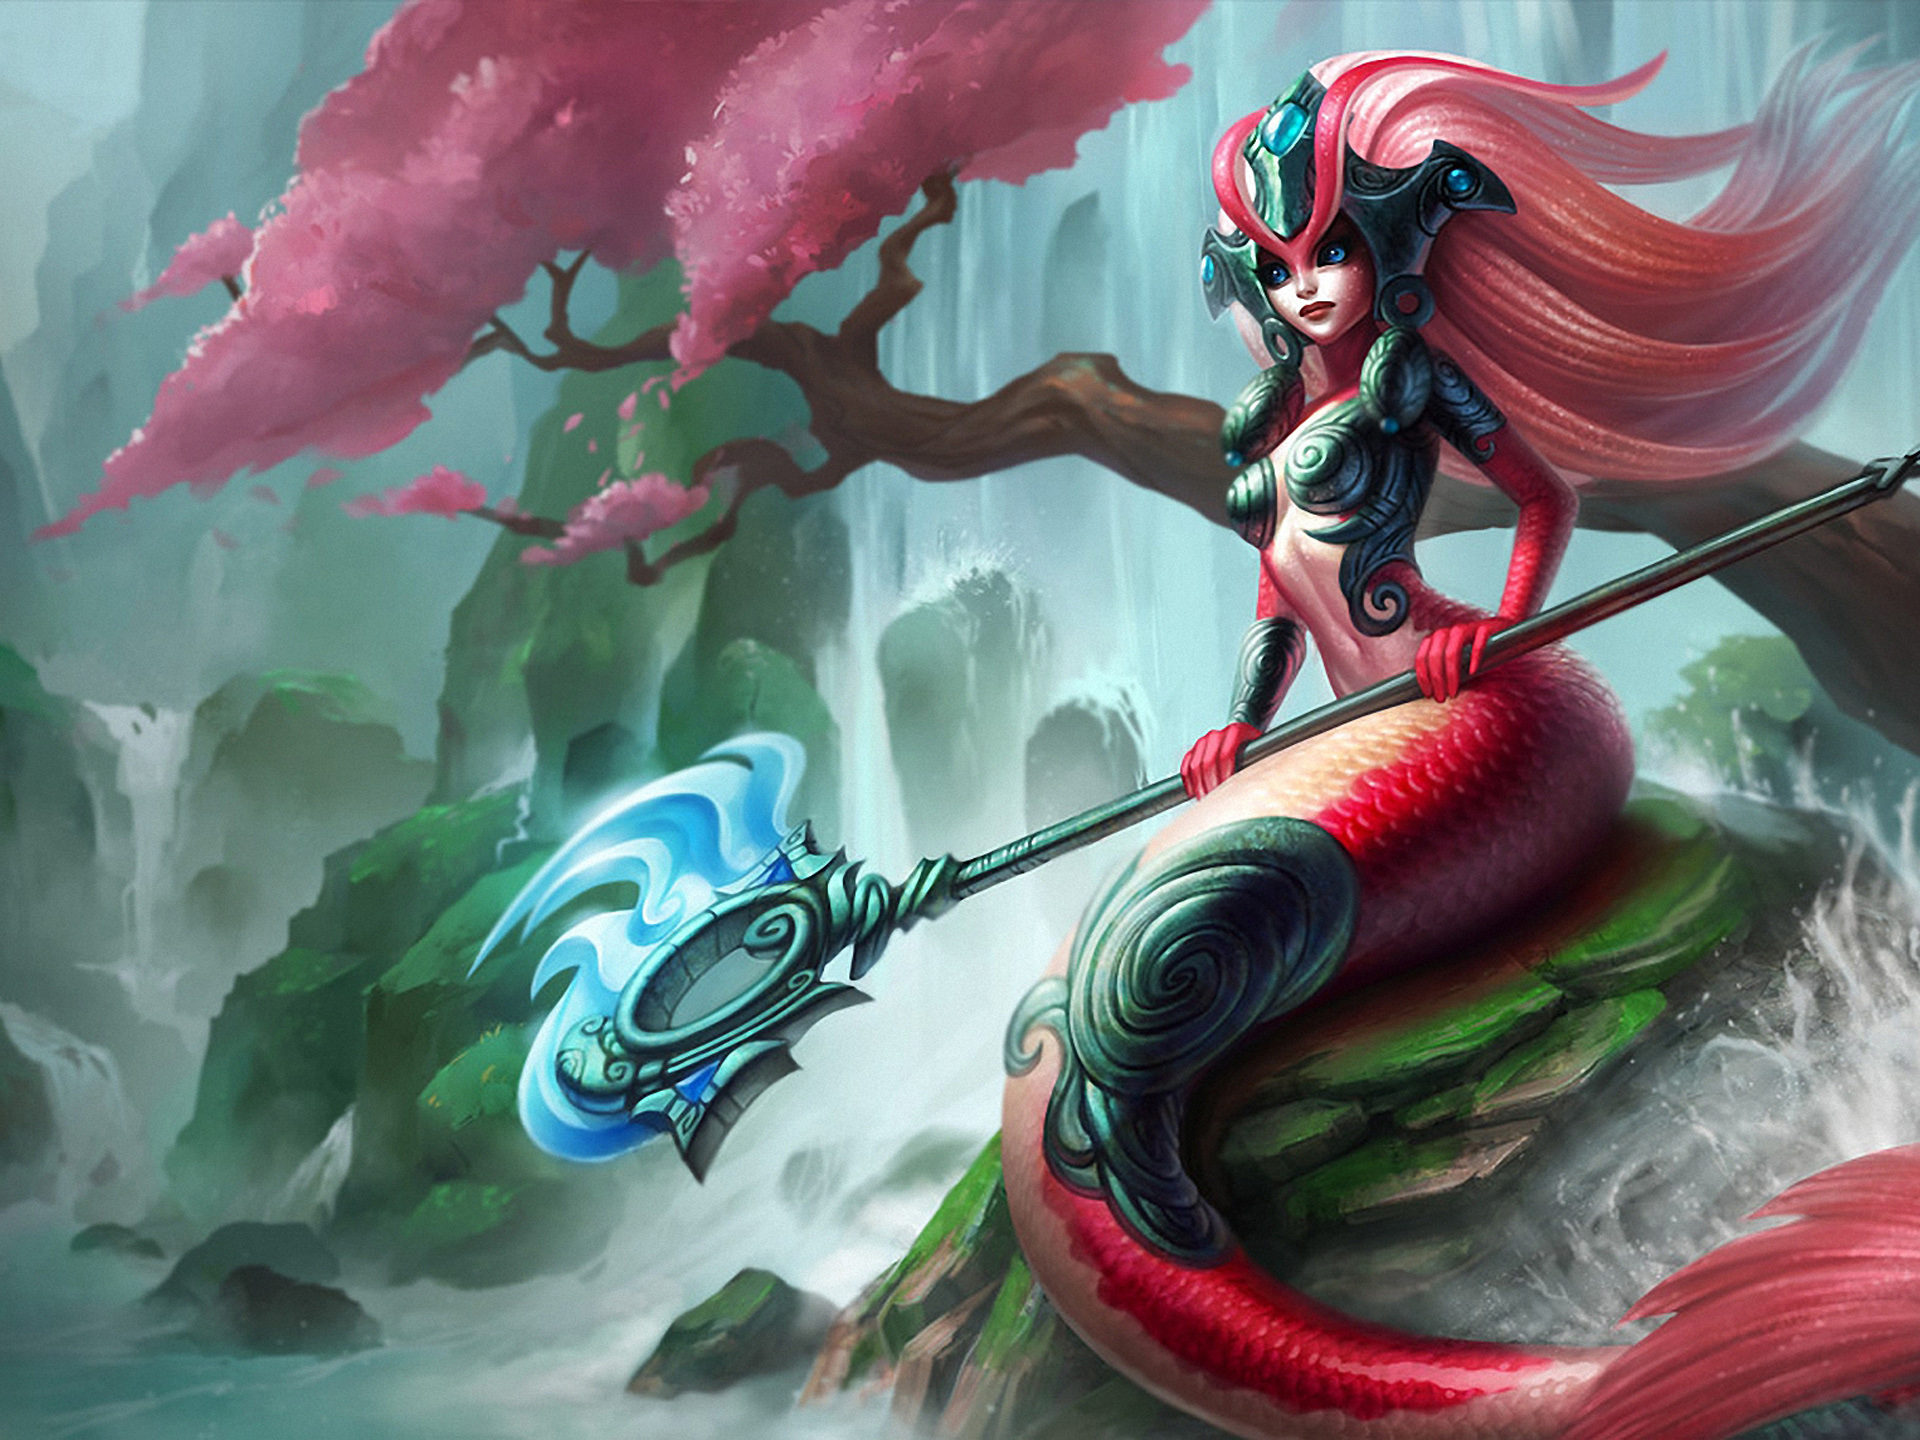 Mage Girl Wallpaper Video Game League Of Legends Koi Nami Girl Mermaid River